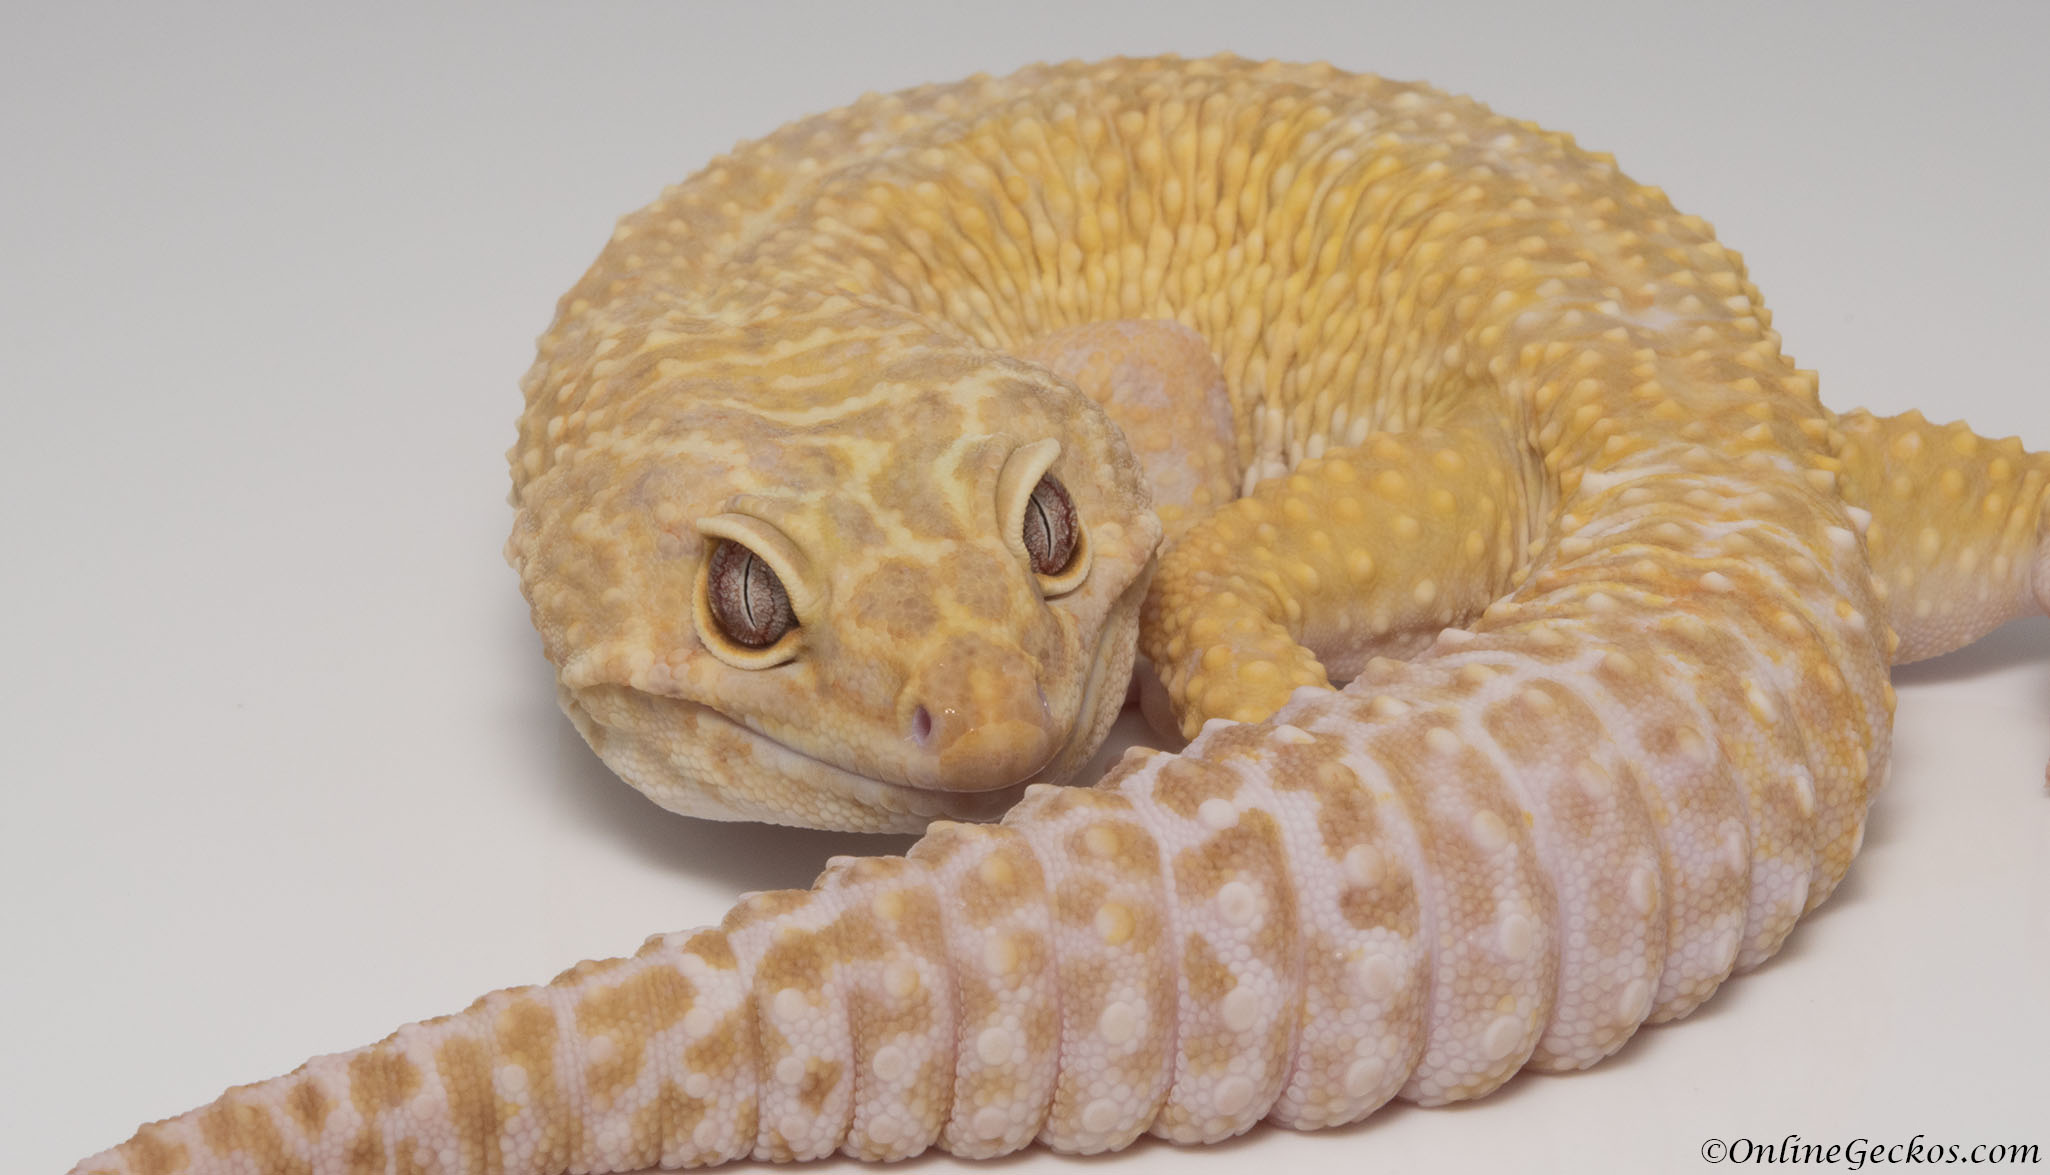 leopard-geckos-for-sale-onlinegeckos-quality-gecko-breeder-super-giant-tremper-sunglow-apollo.jpg